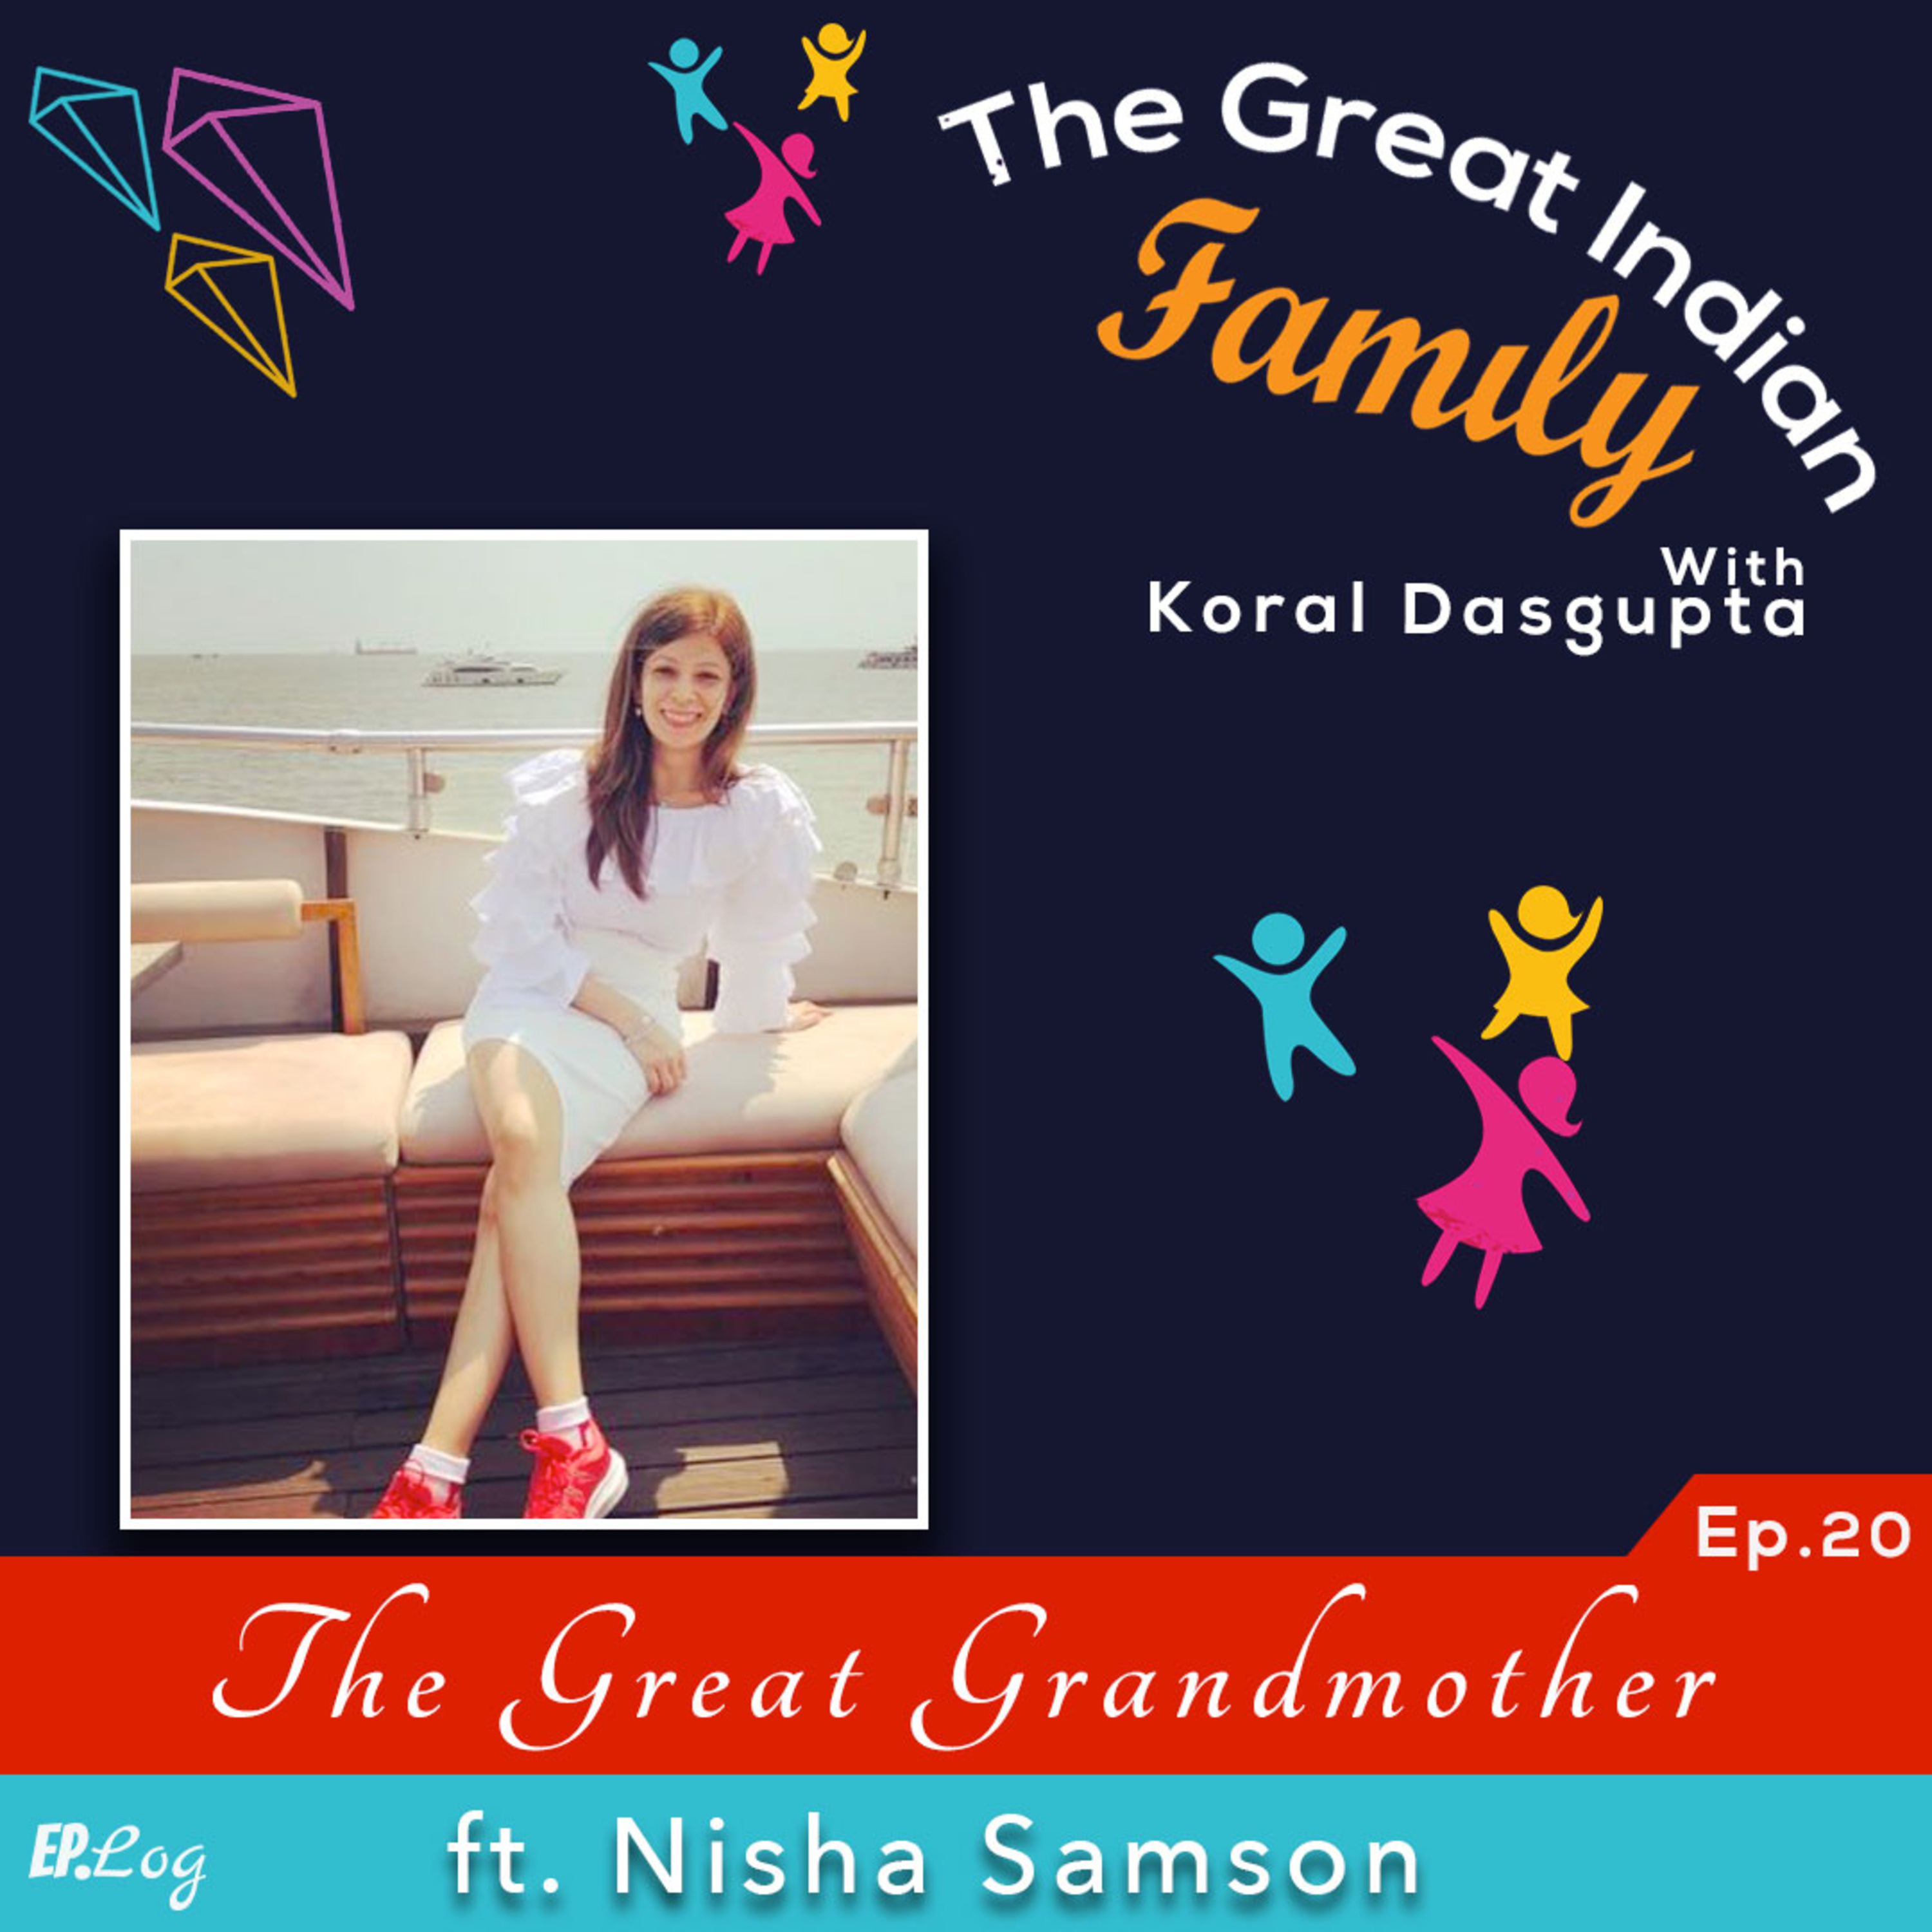 Ep.20 The Great Grandmother ft. Nisha Samson, Digital Consultant & Ex-Editor In Chief Times Internet